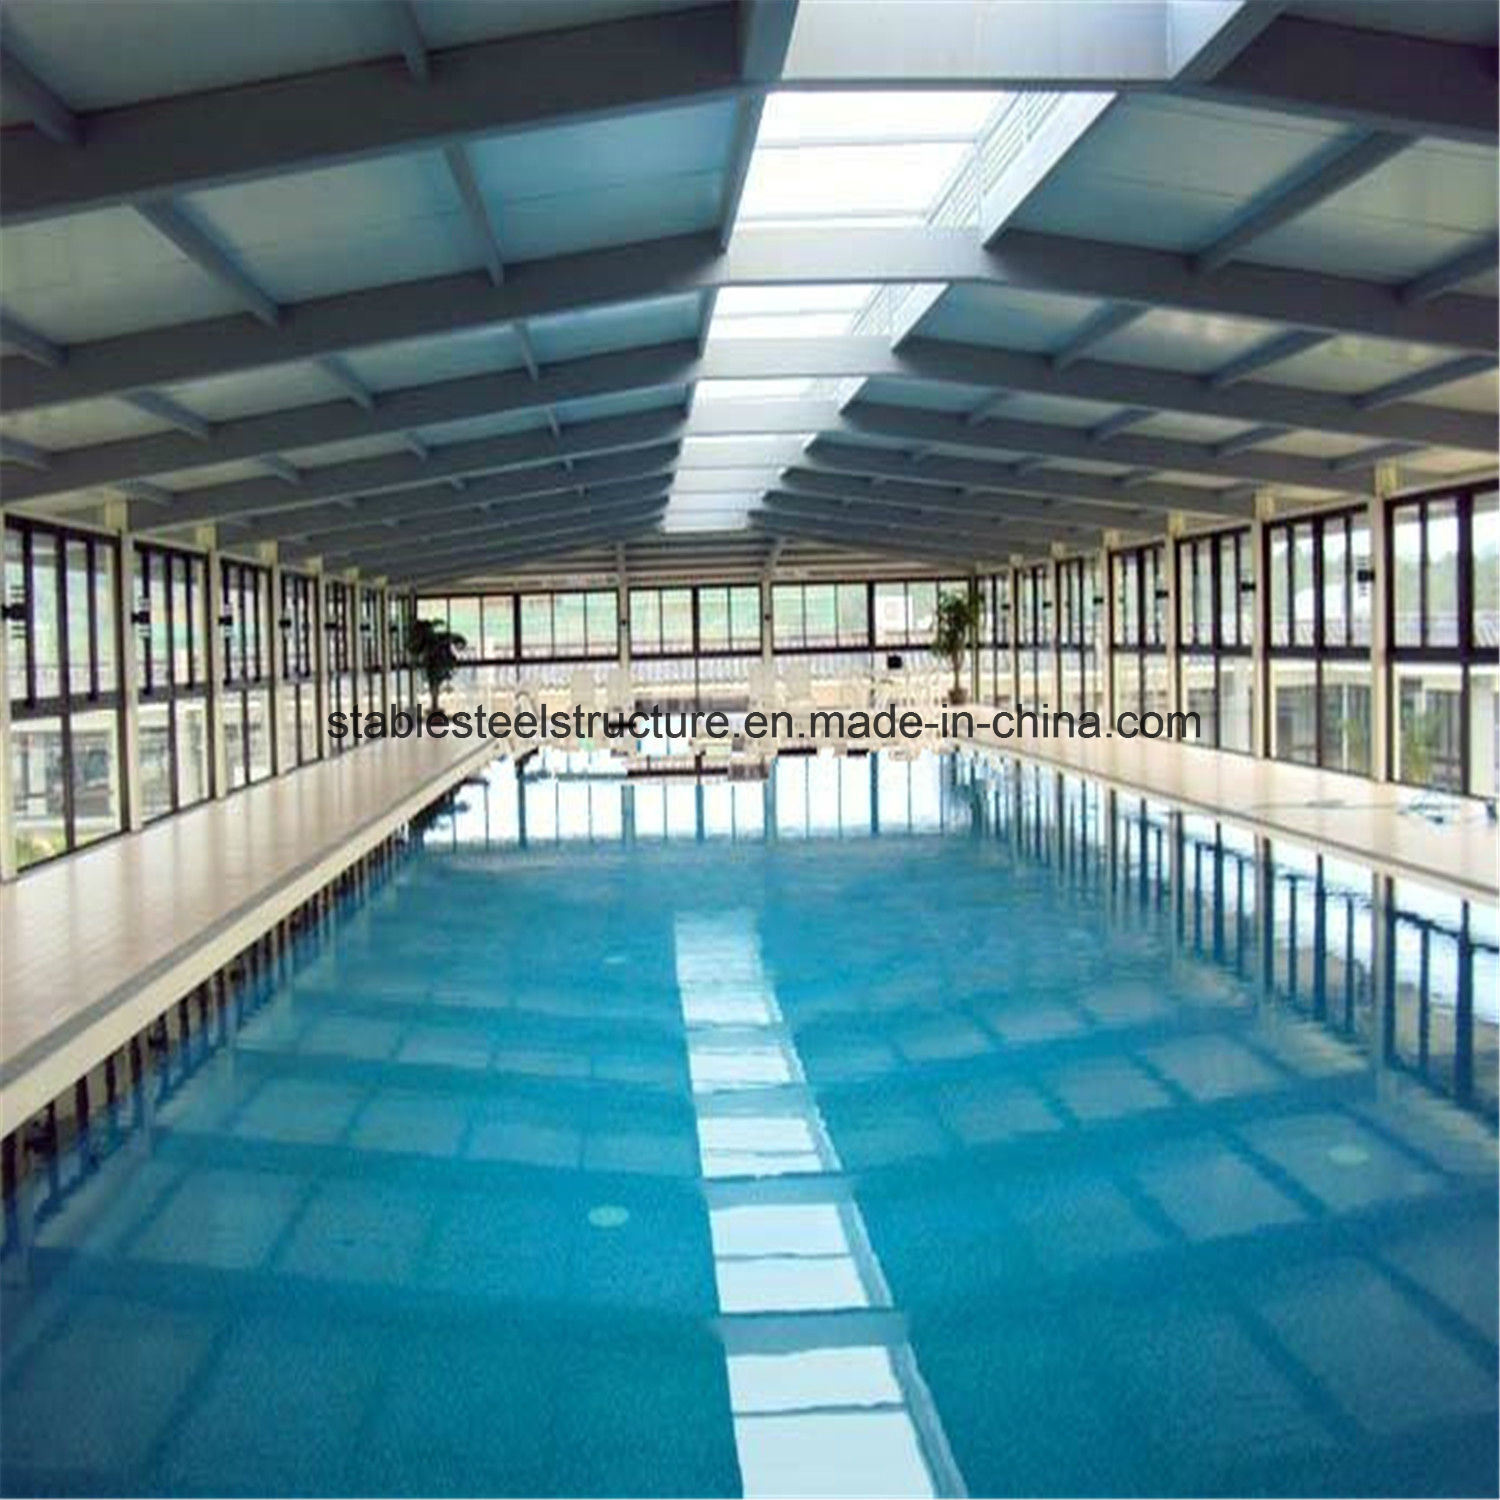 China Prefab Metal Structure Indoor Swimming Pool Bldgs for Sale ...